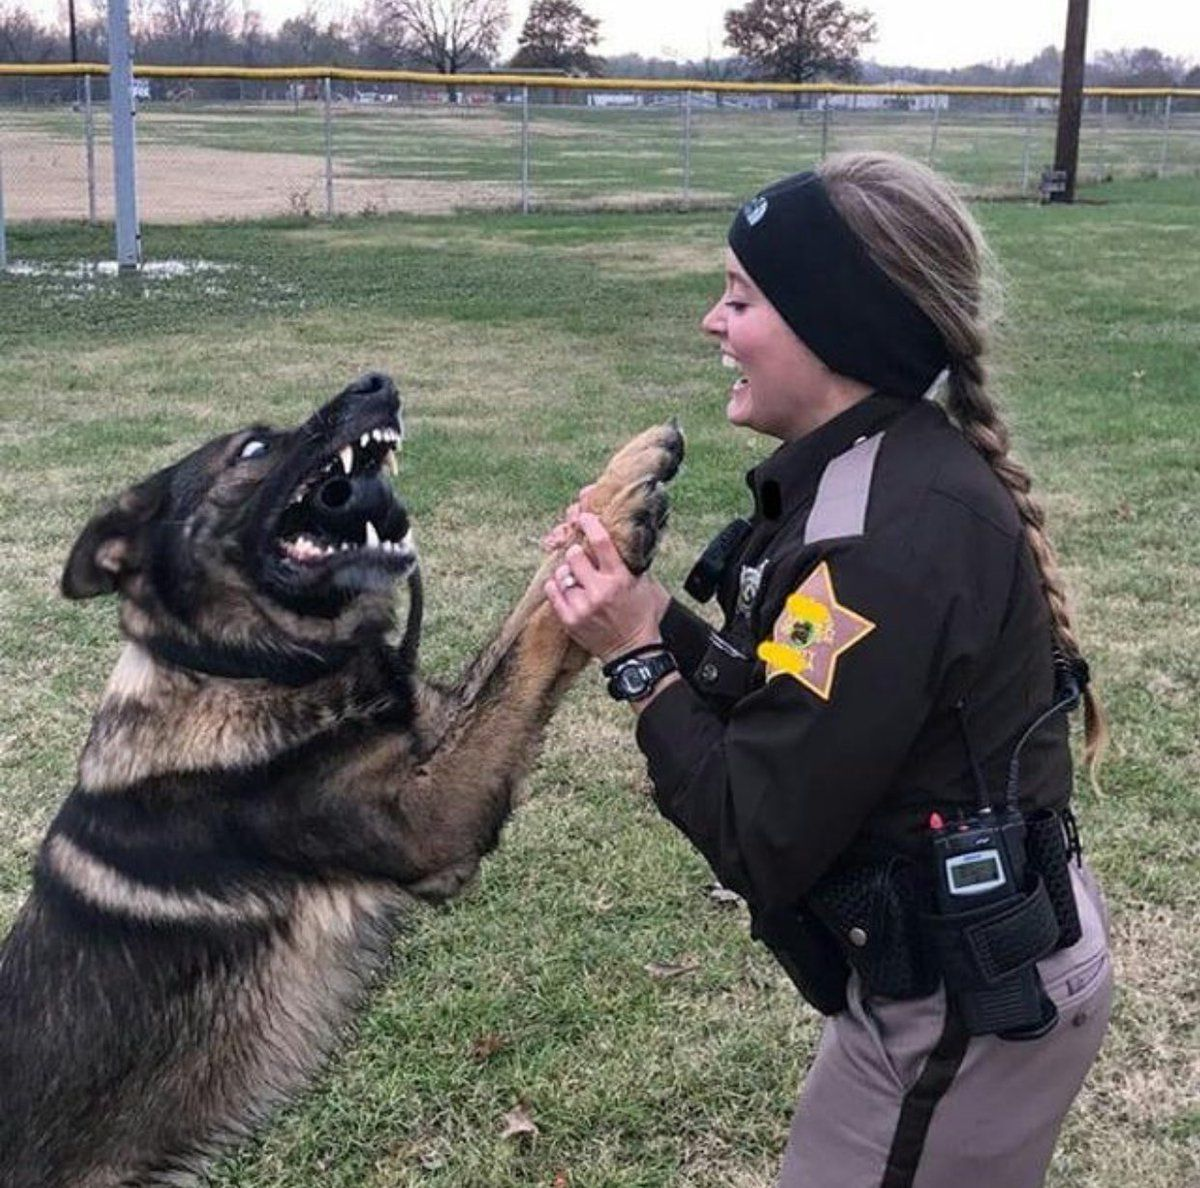 Police Support Usa Backthecops Twitter Military Dogs Police Dogs Military Working Dogs